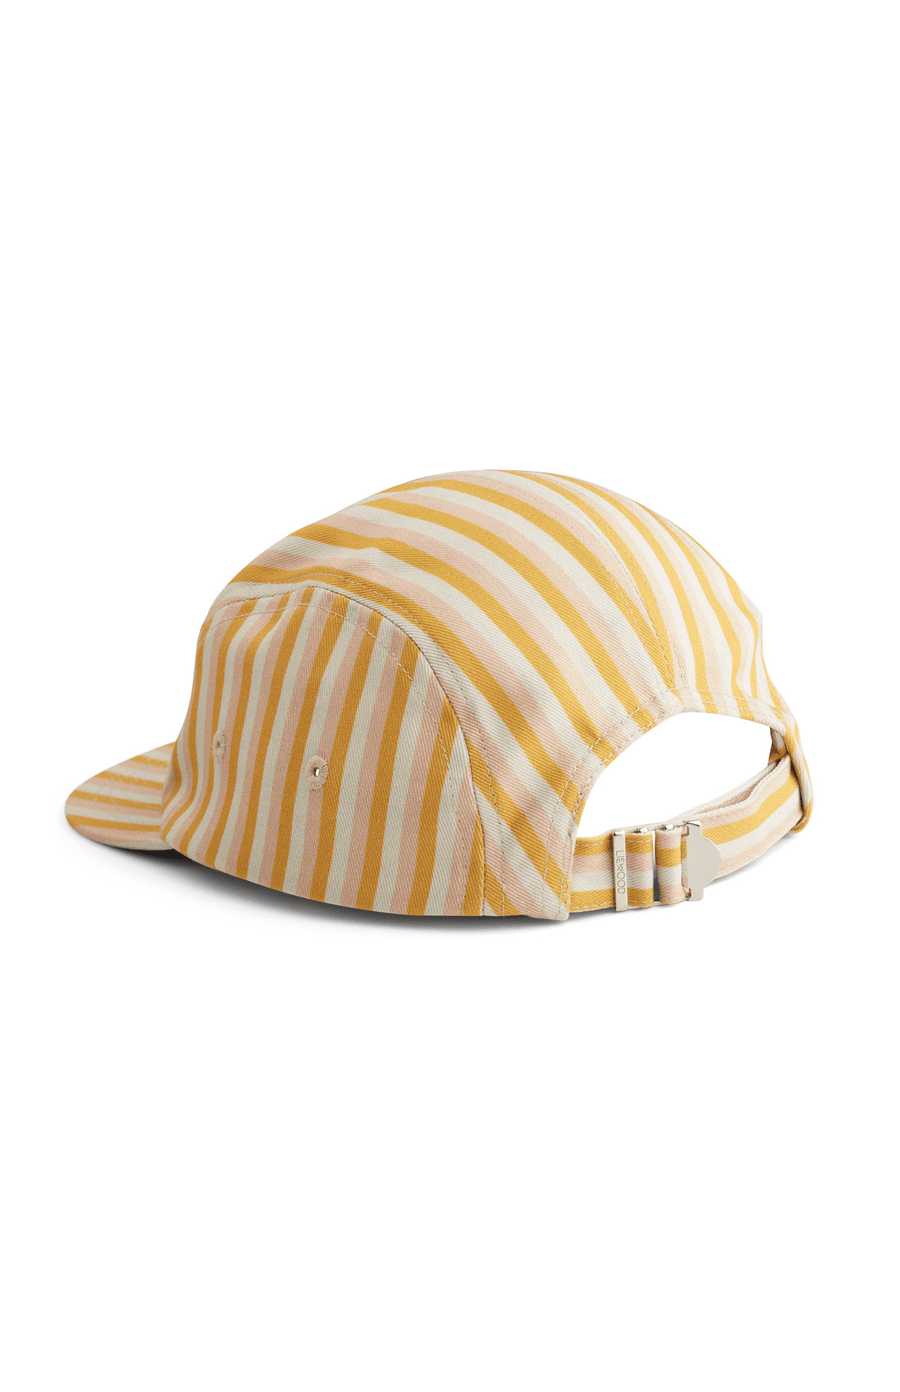 Liewood Rory Cap -  Stripe Peach/Sandy/Yellow Mellow